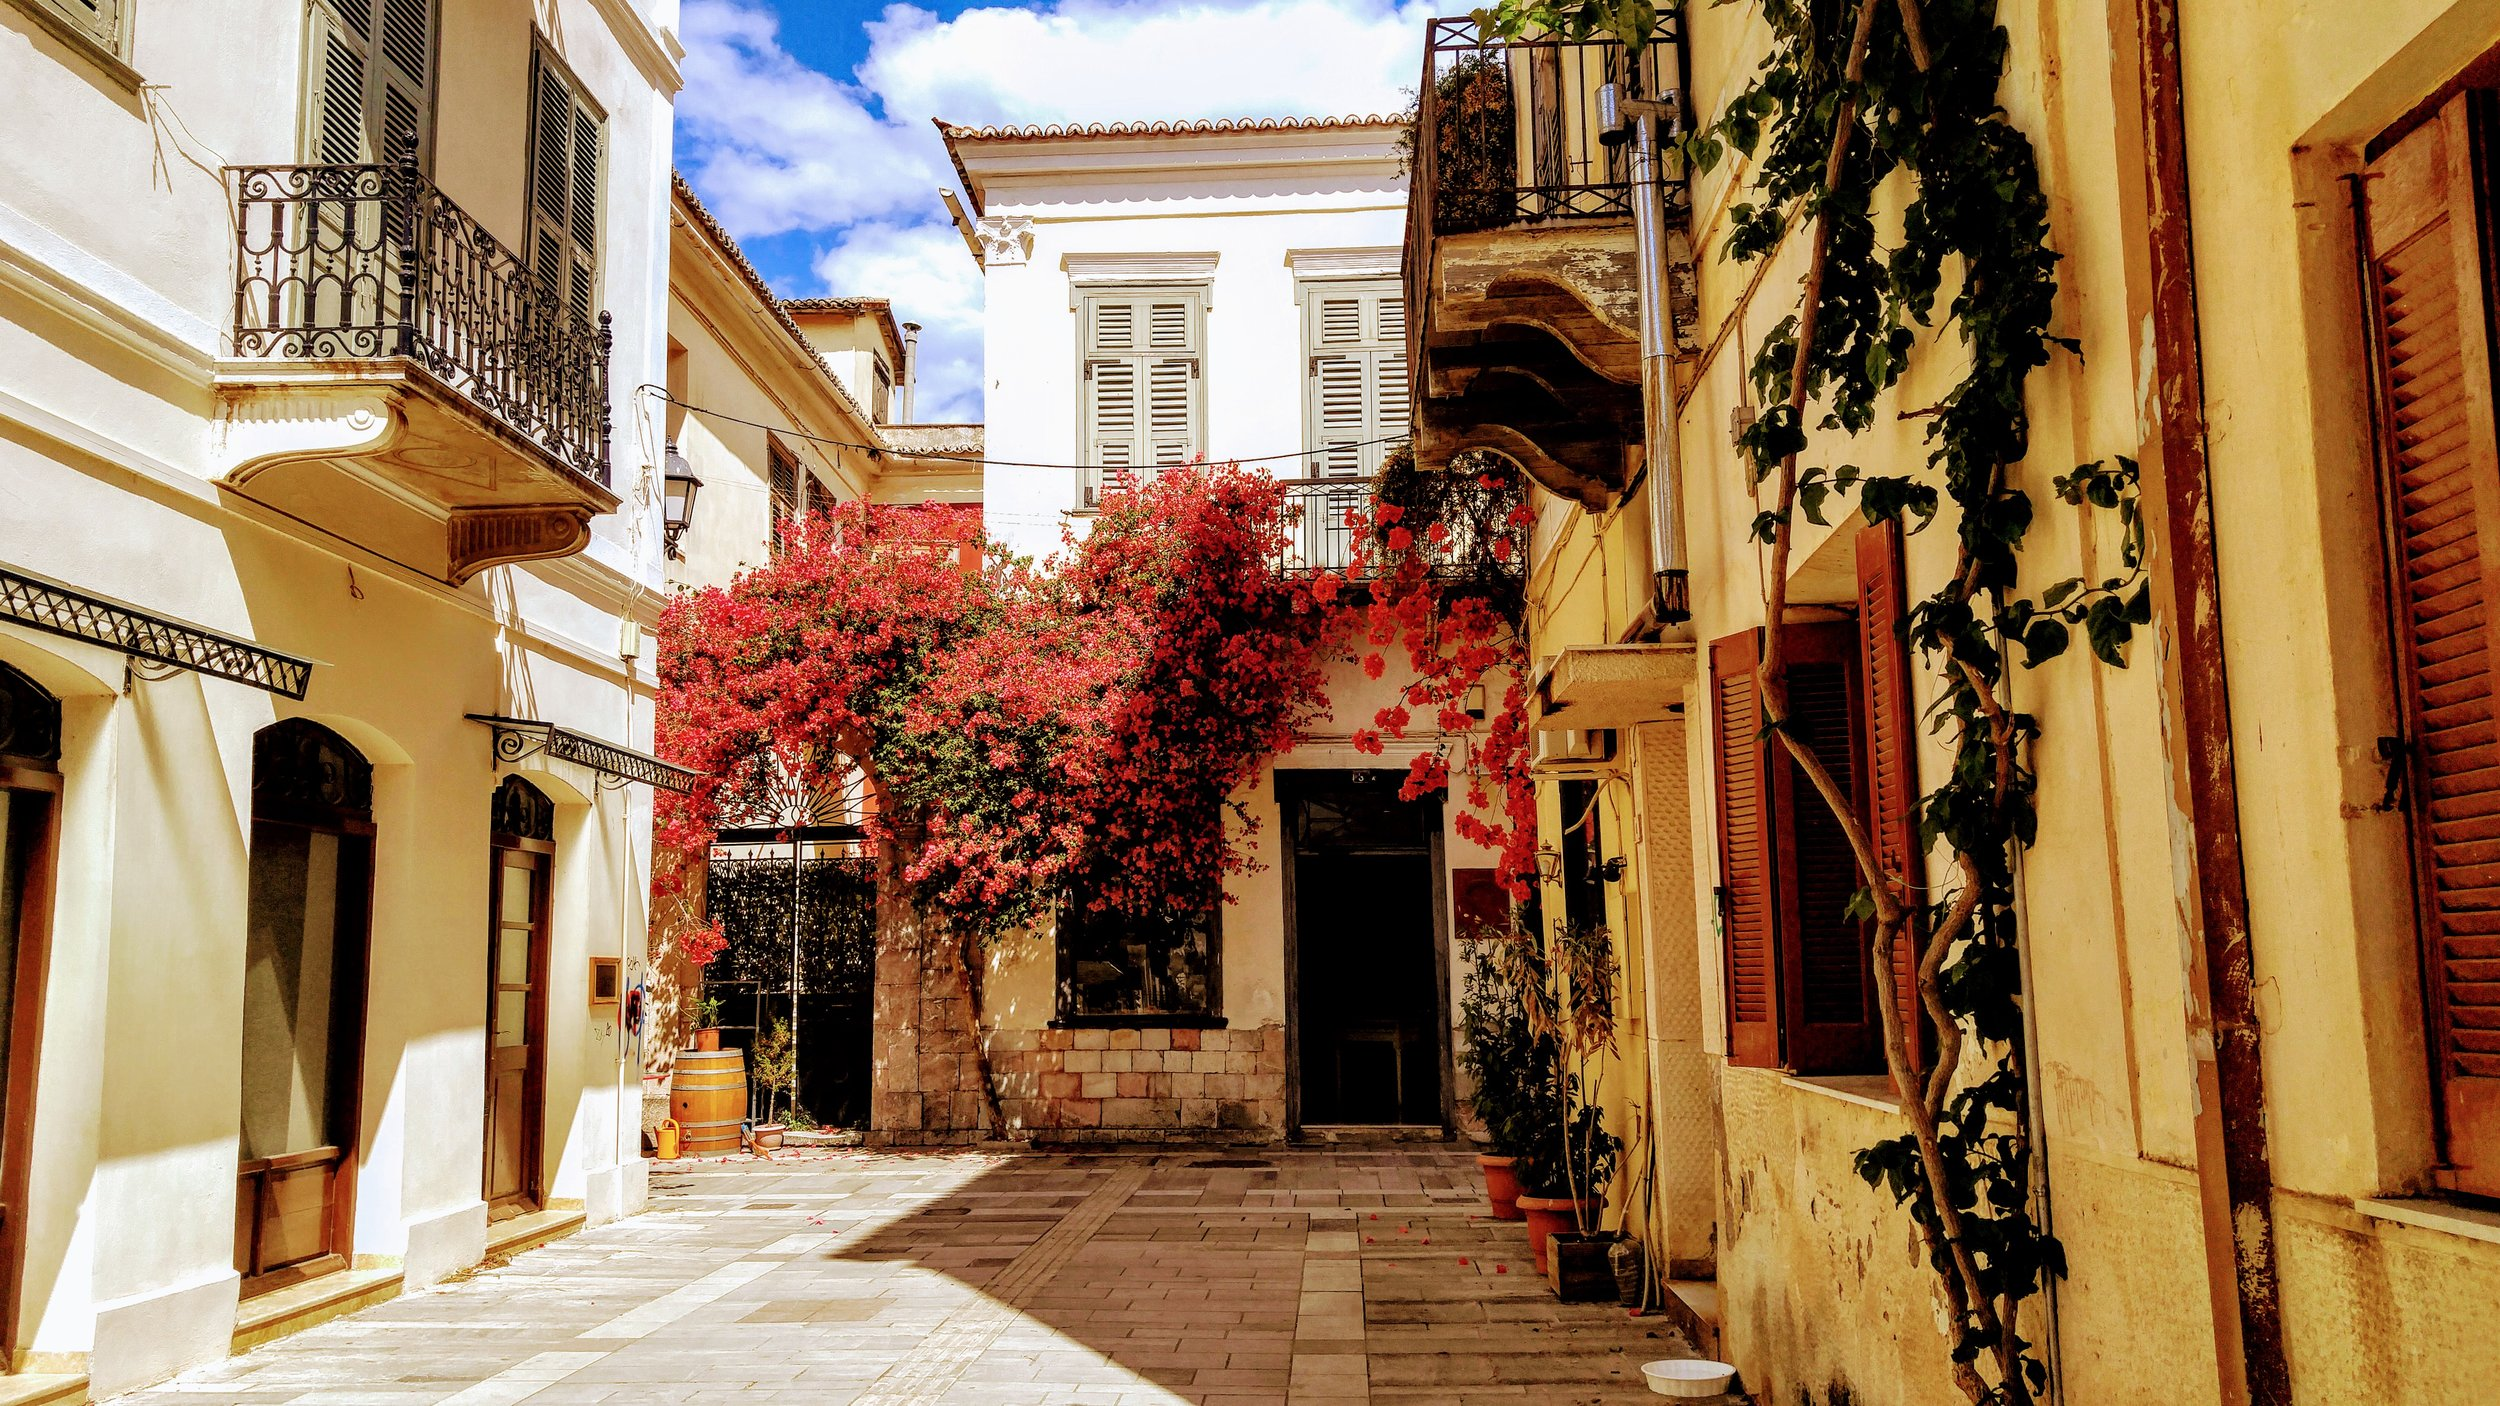 This is why Nafplio has been voted one of the prettiest towns in Greece.